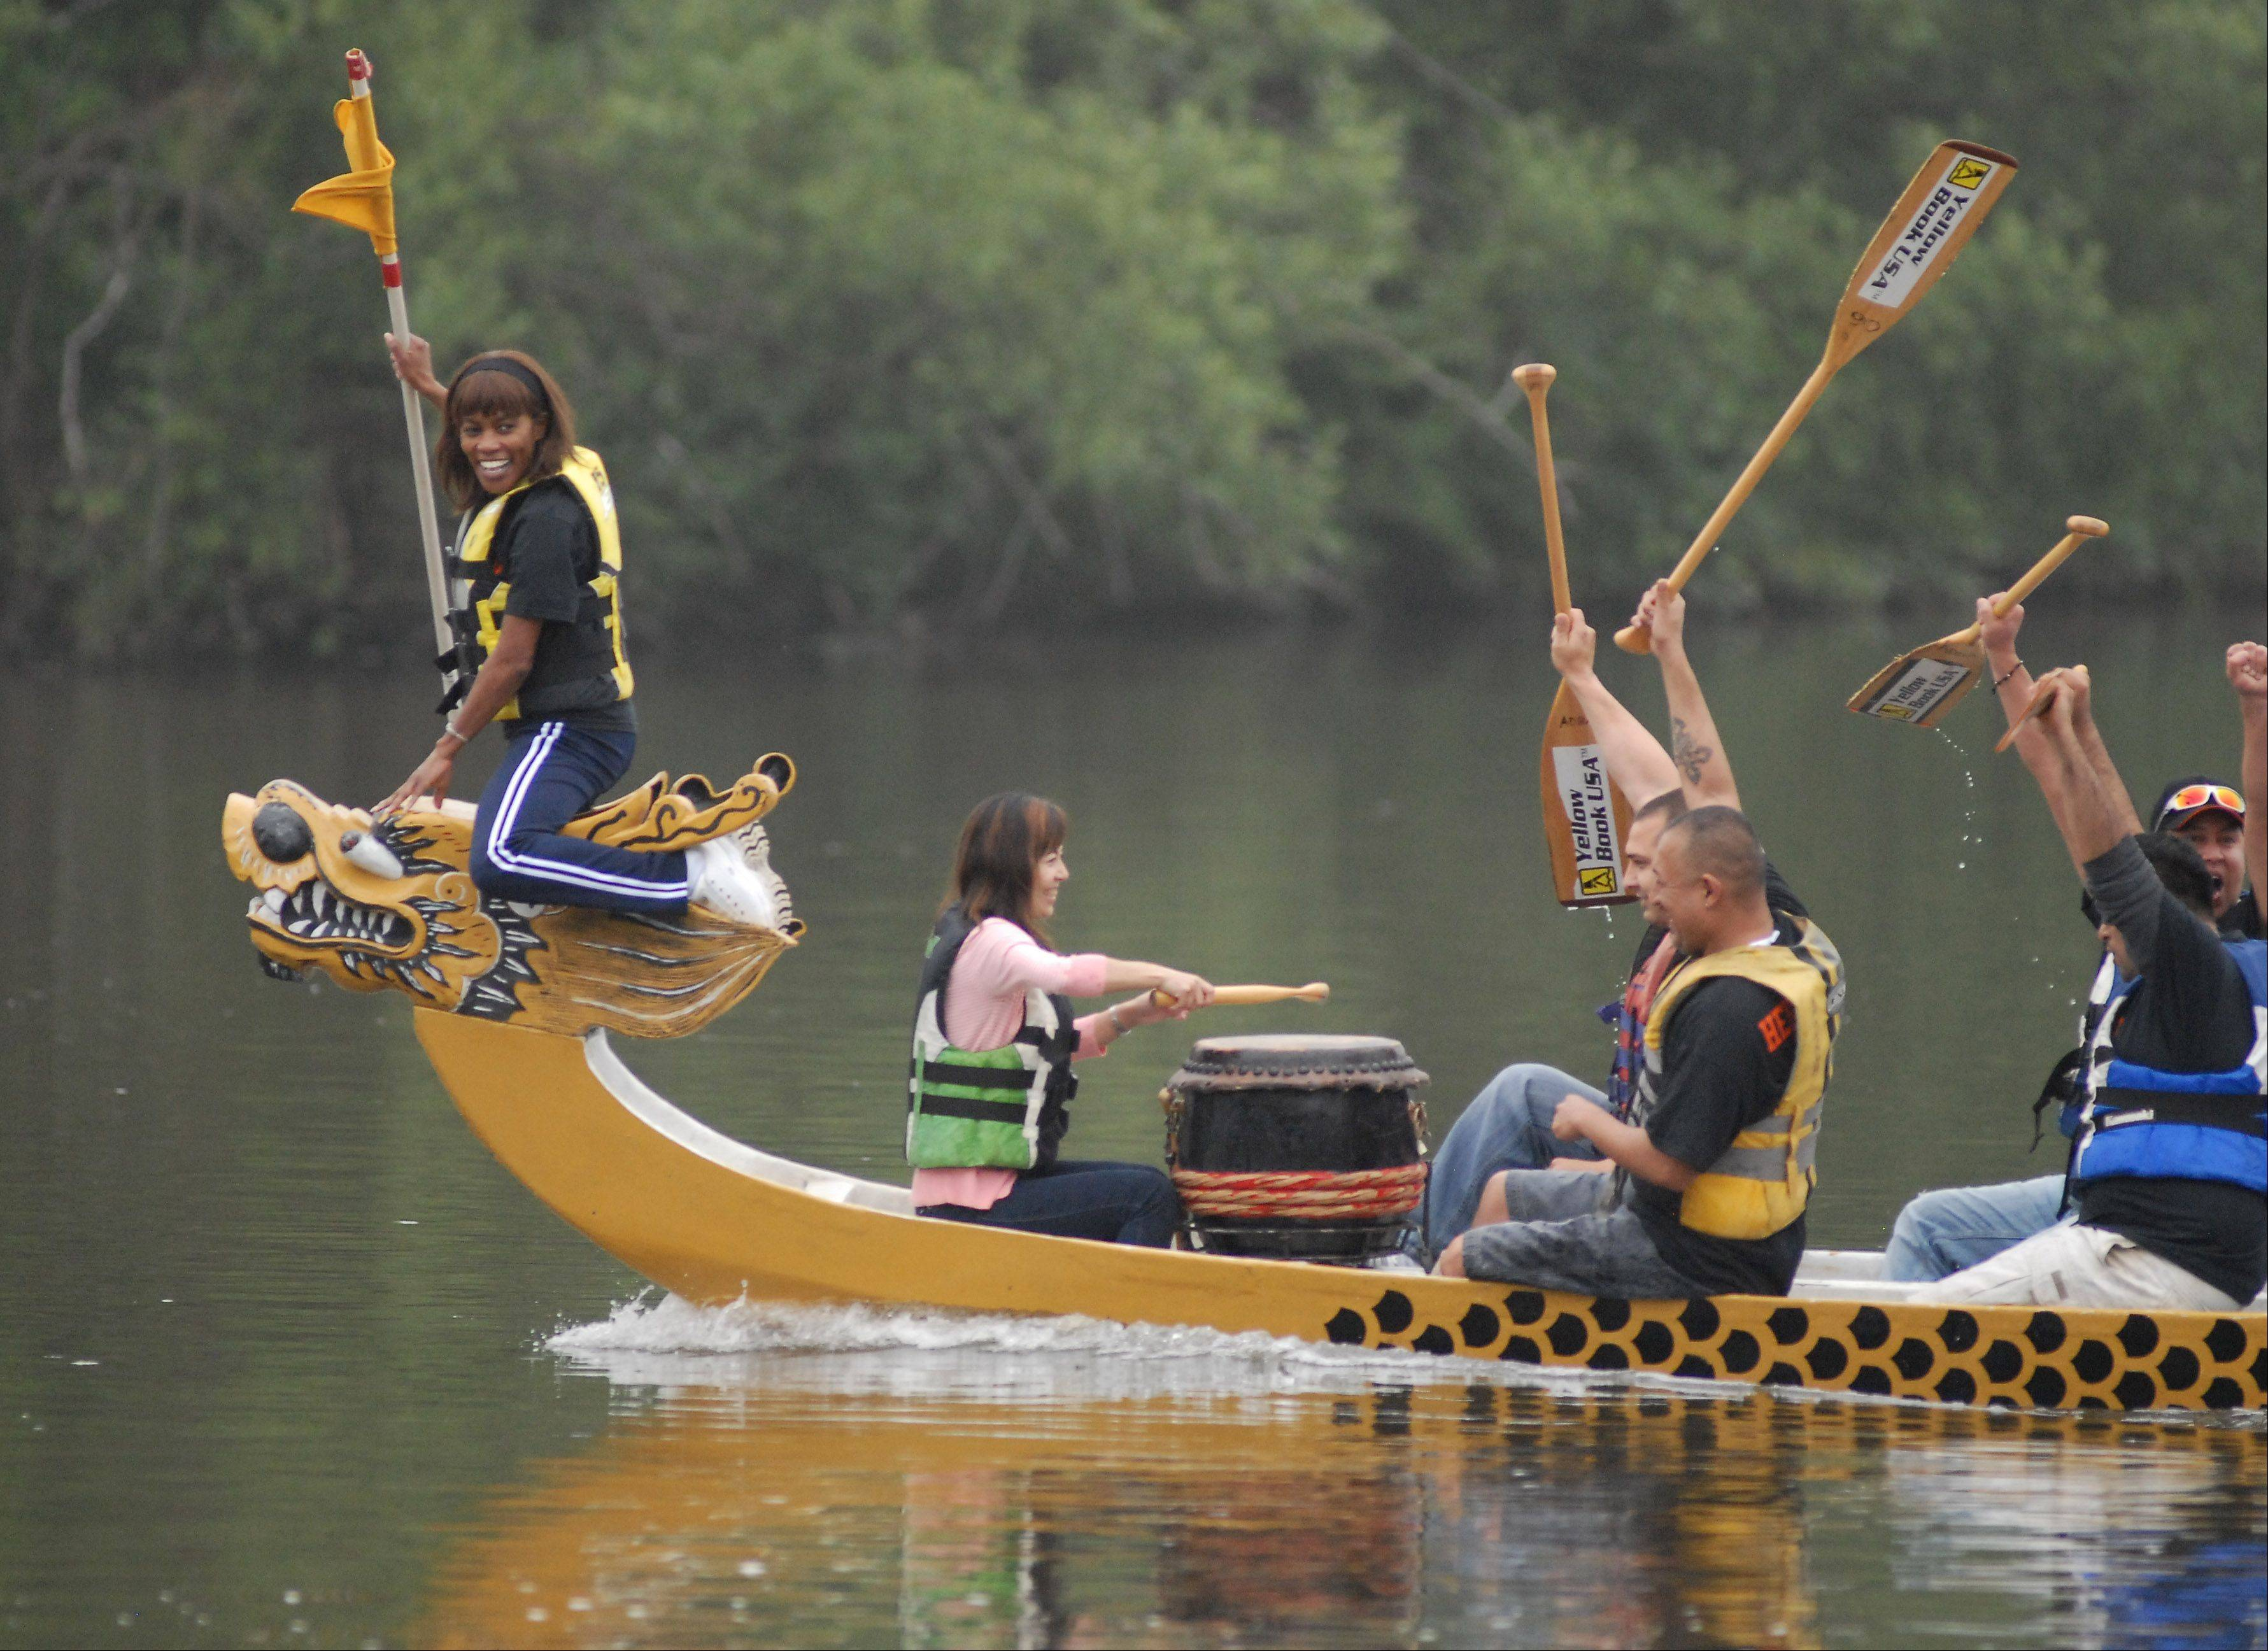 See Dragon Boat Racing at RiverFest in St. Charles.